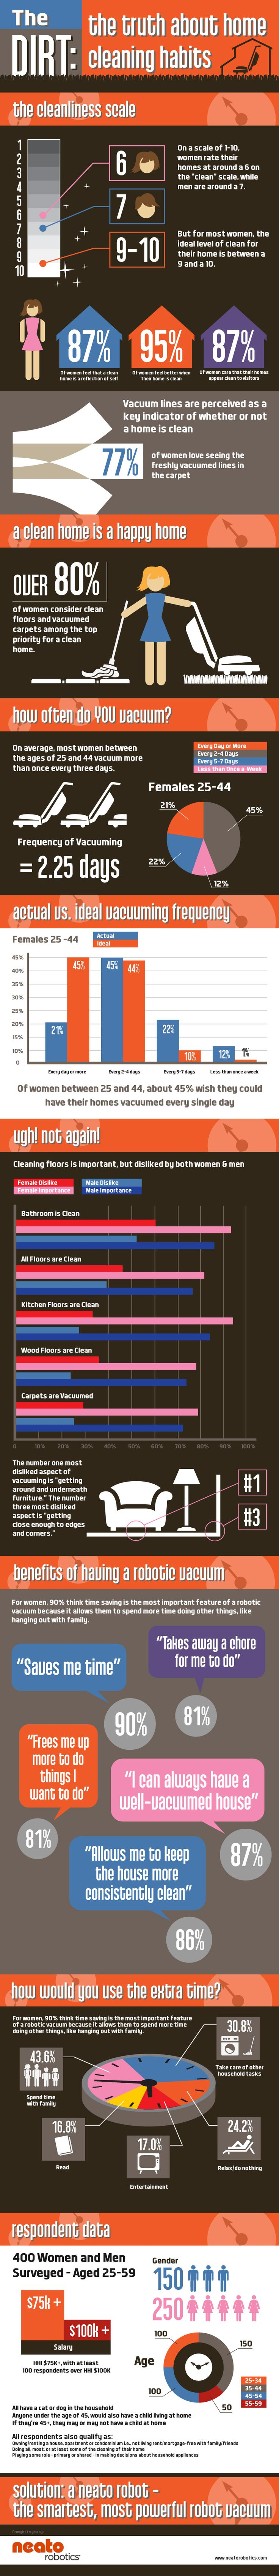 Did you know that over 80% of women consider clean floors and vacuumed carpets as an essential aspect of a clean home? Based on our extensive survey of more than 400 households, freshly pressed vacuum lines in the carpet are perceived as a key characteristic of a tidy house.